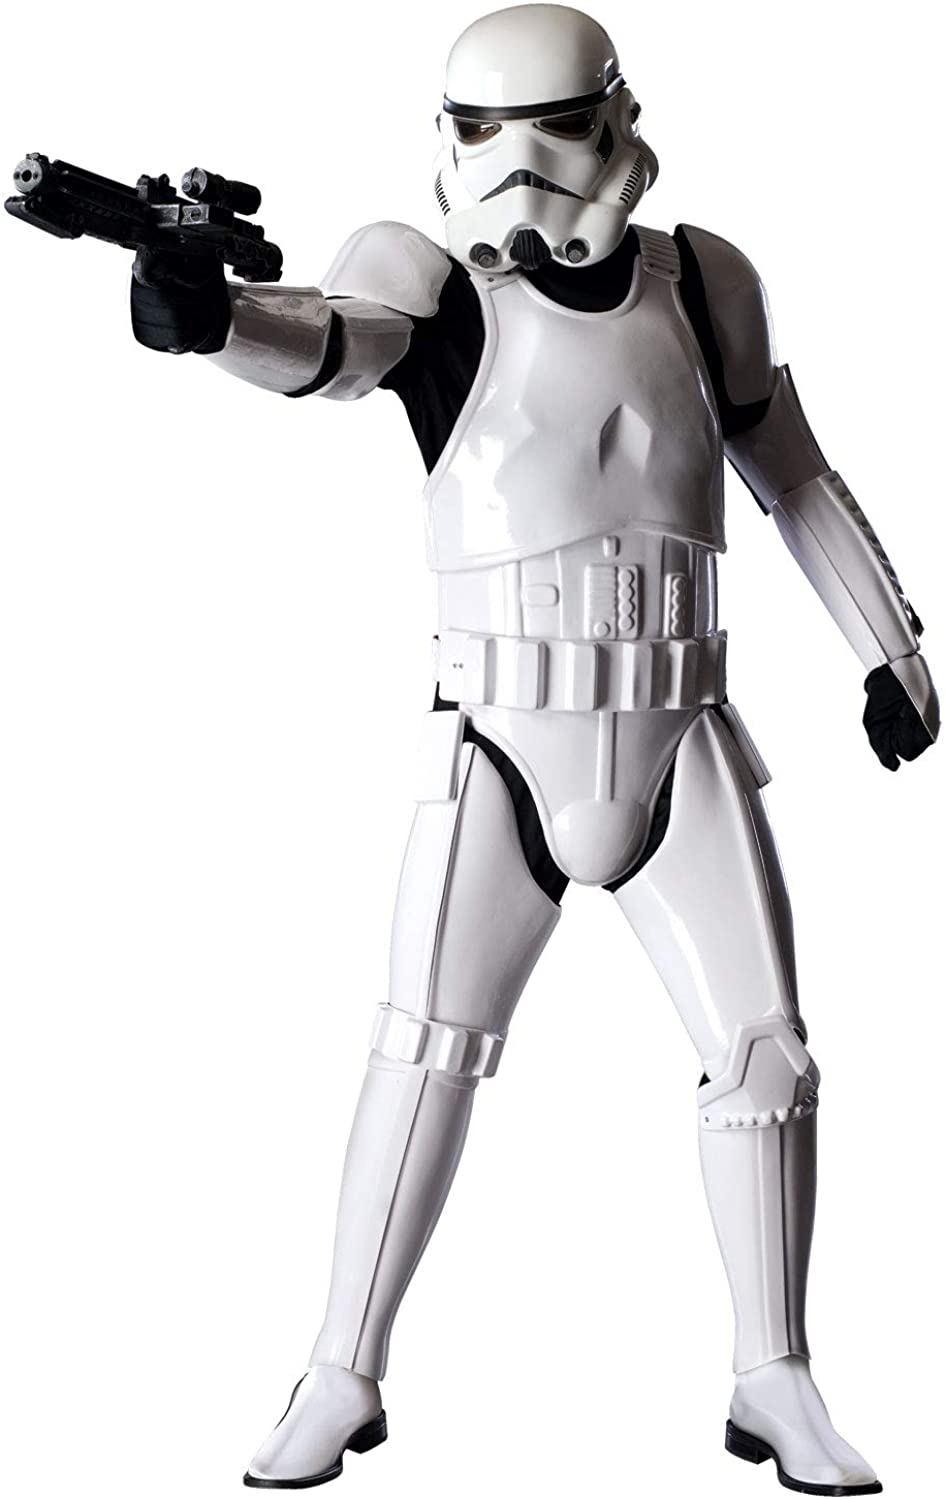 Star Wars Storm troopers cosplay idea for guys